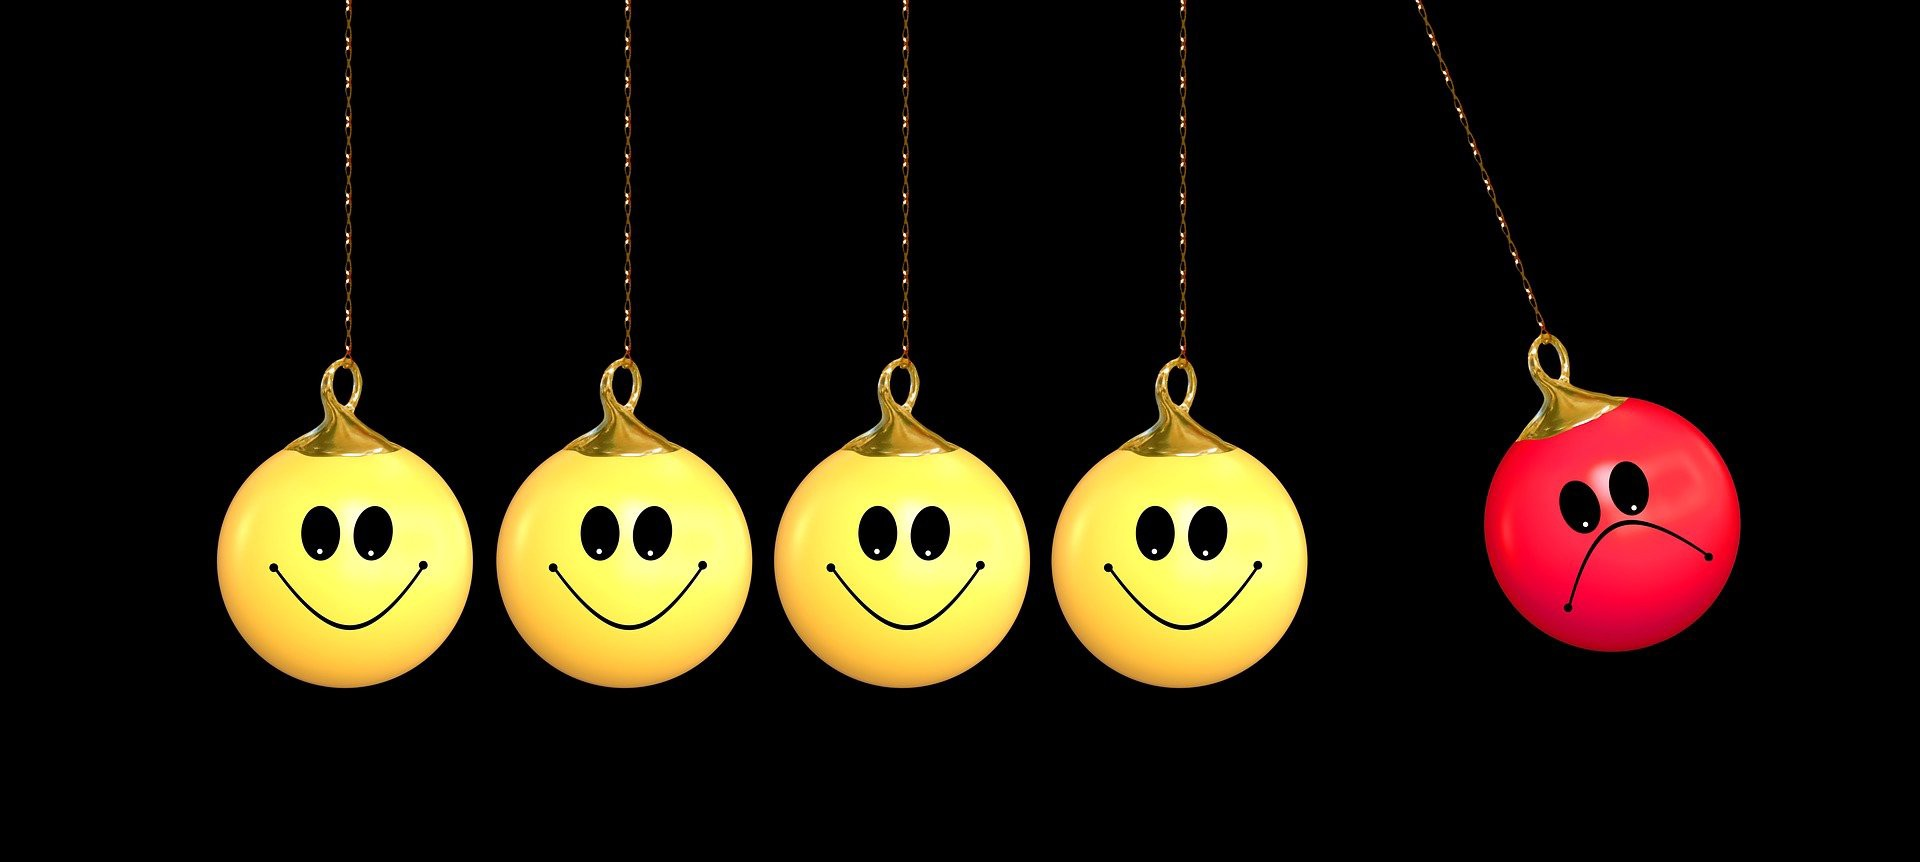 Group of smiling balls in a line. One sad ball is going to bounce the other balls.